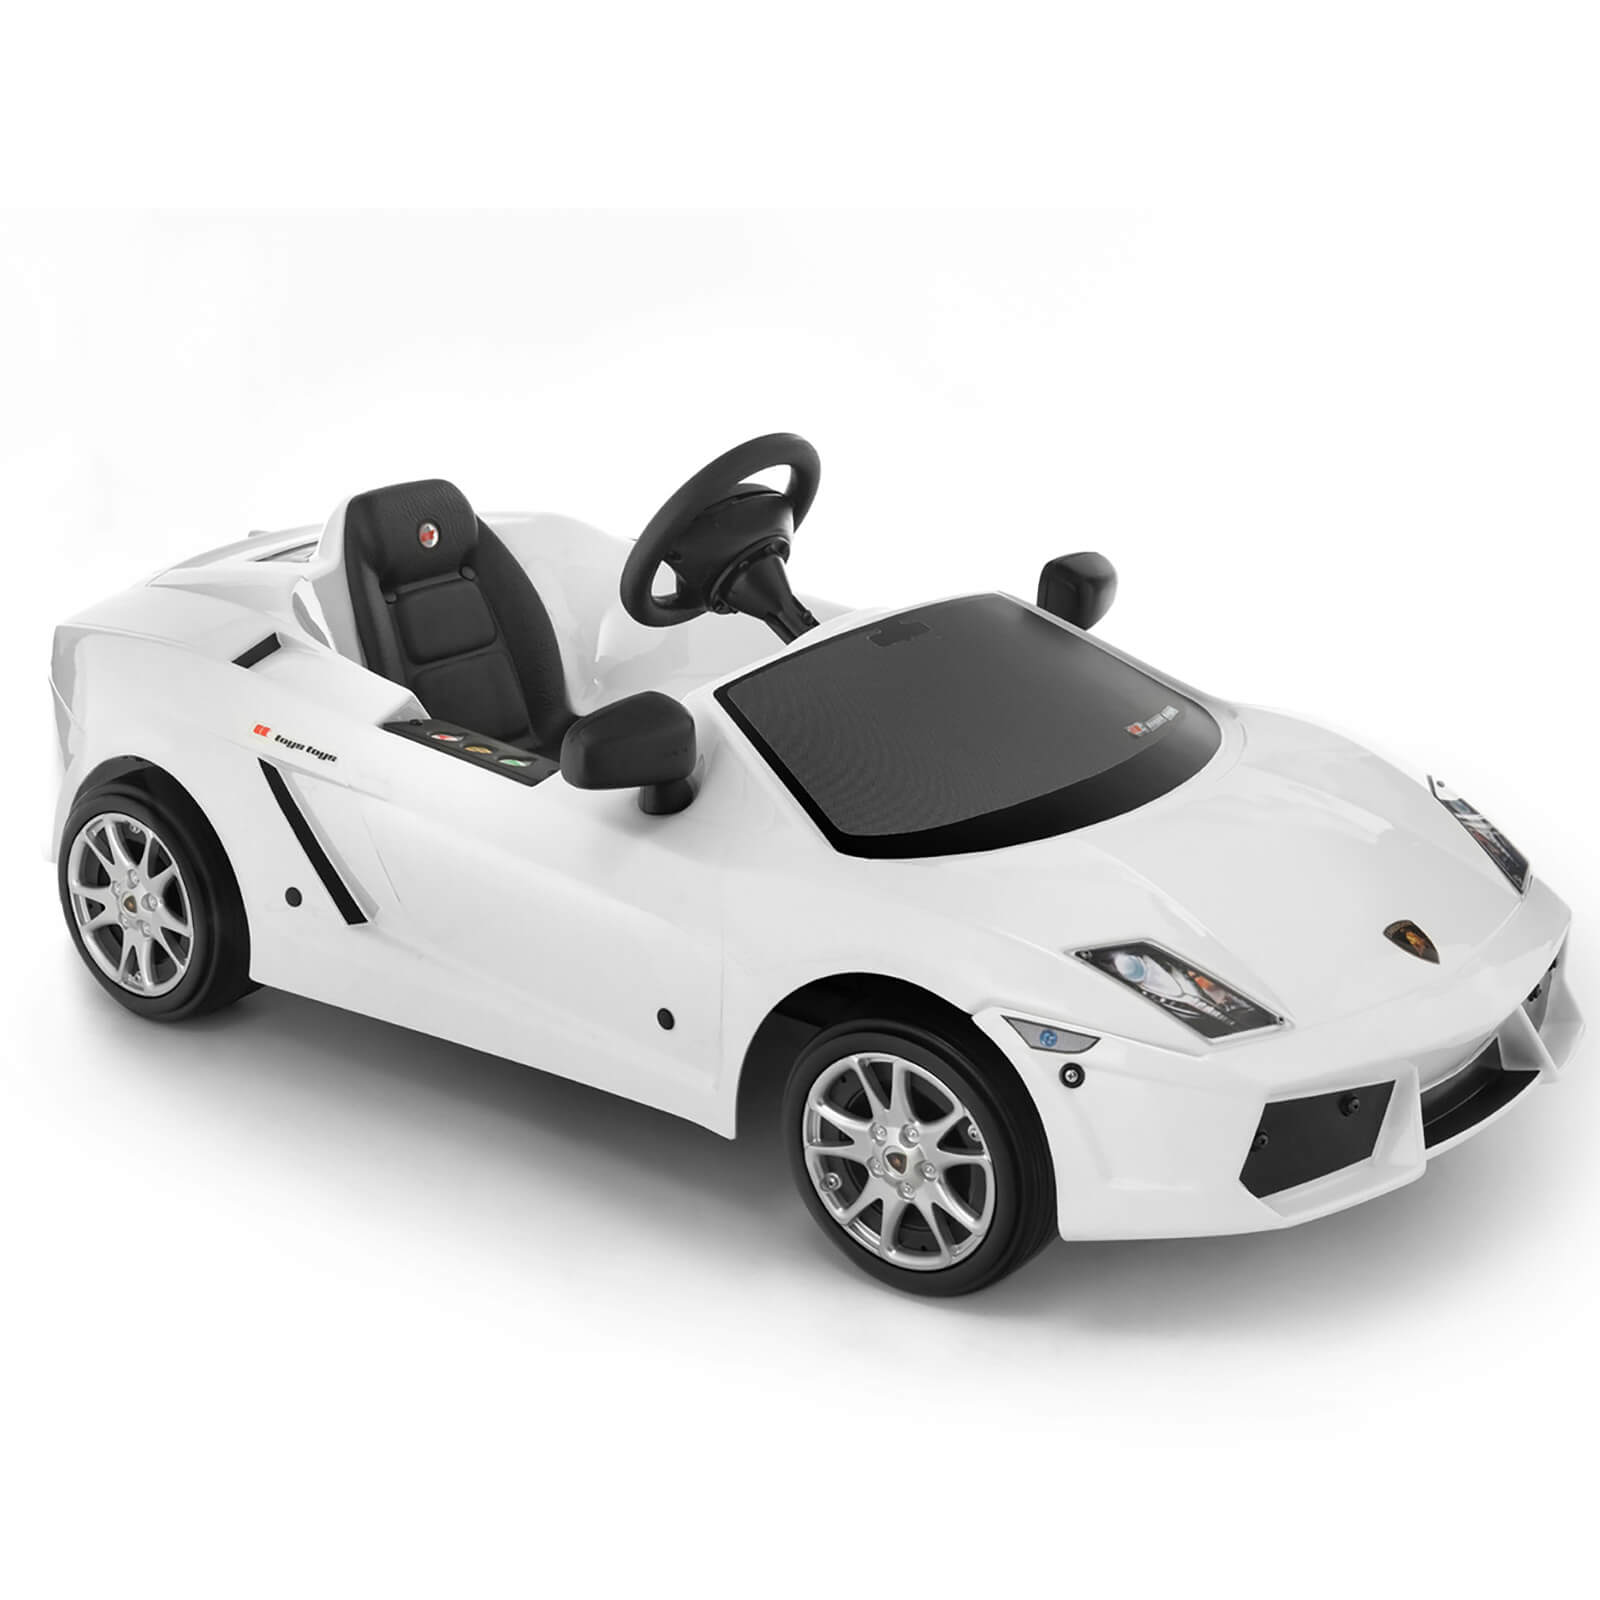 Lamborghini Gallardo Pedal Power Car - White